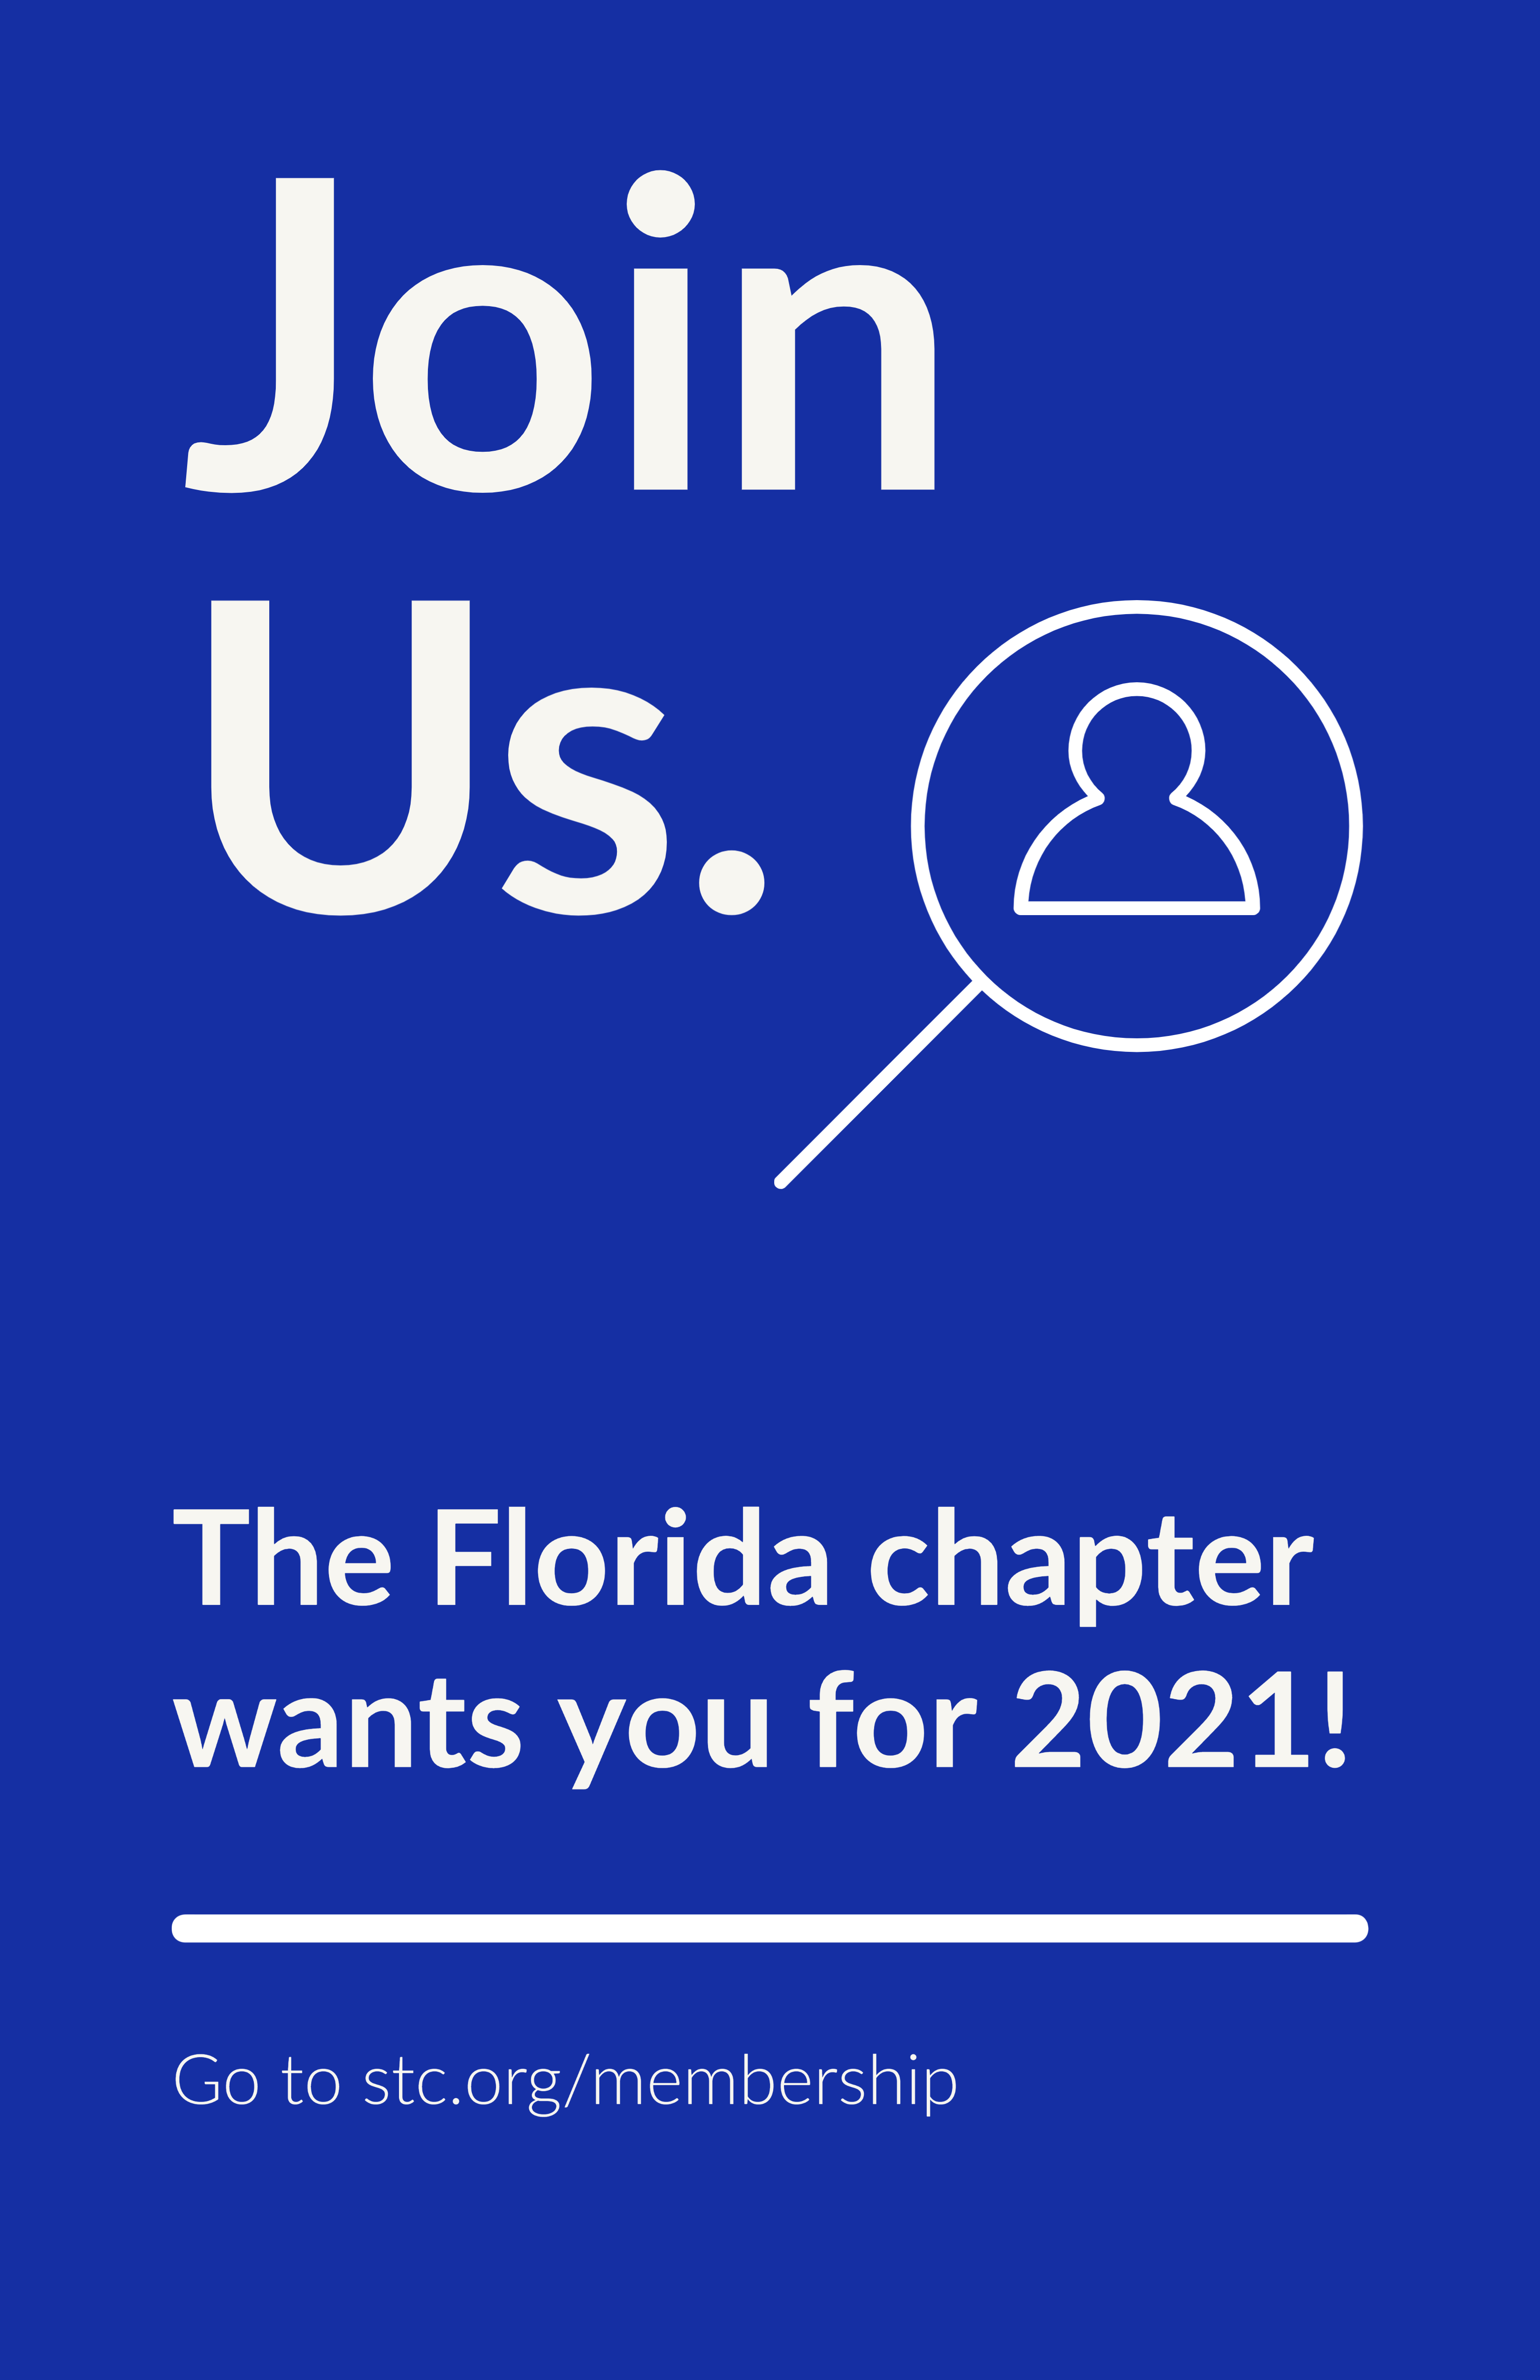 Join STC Florida for 2021